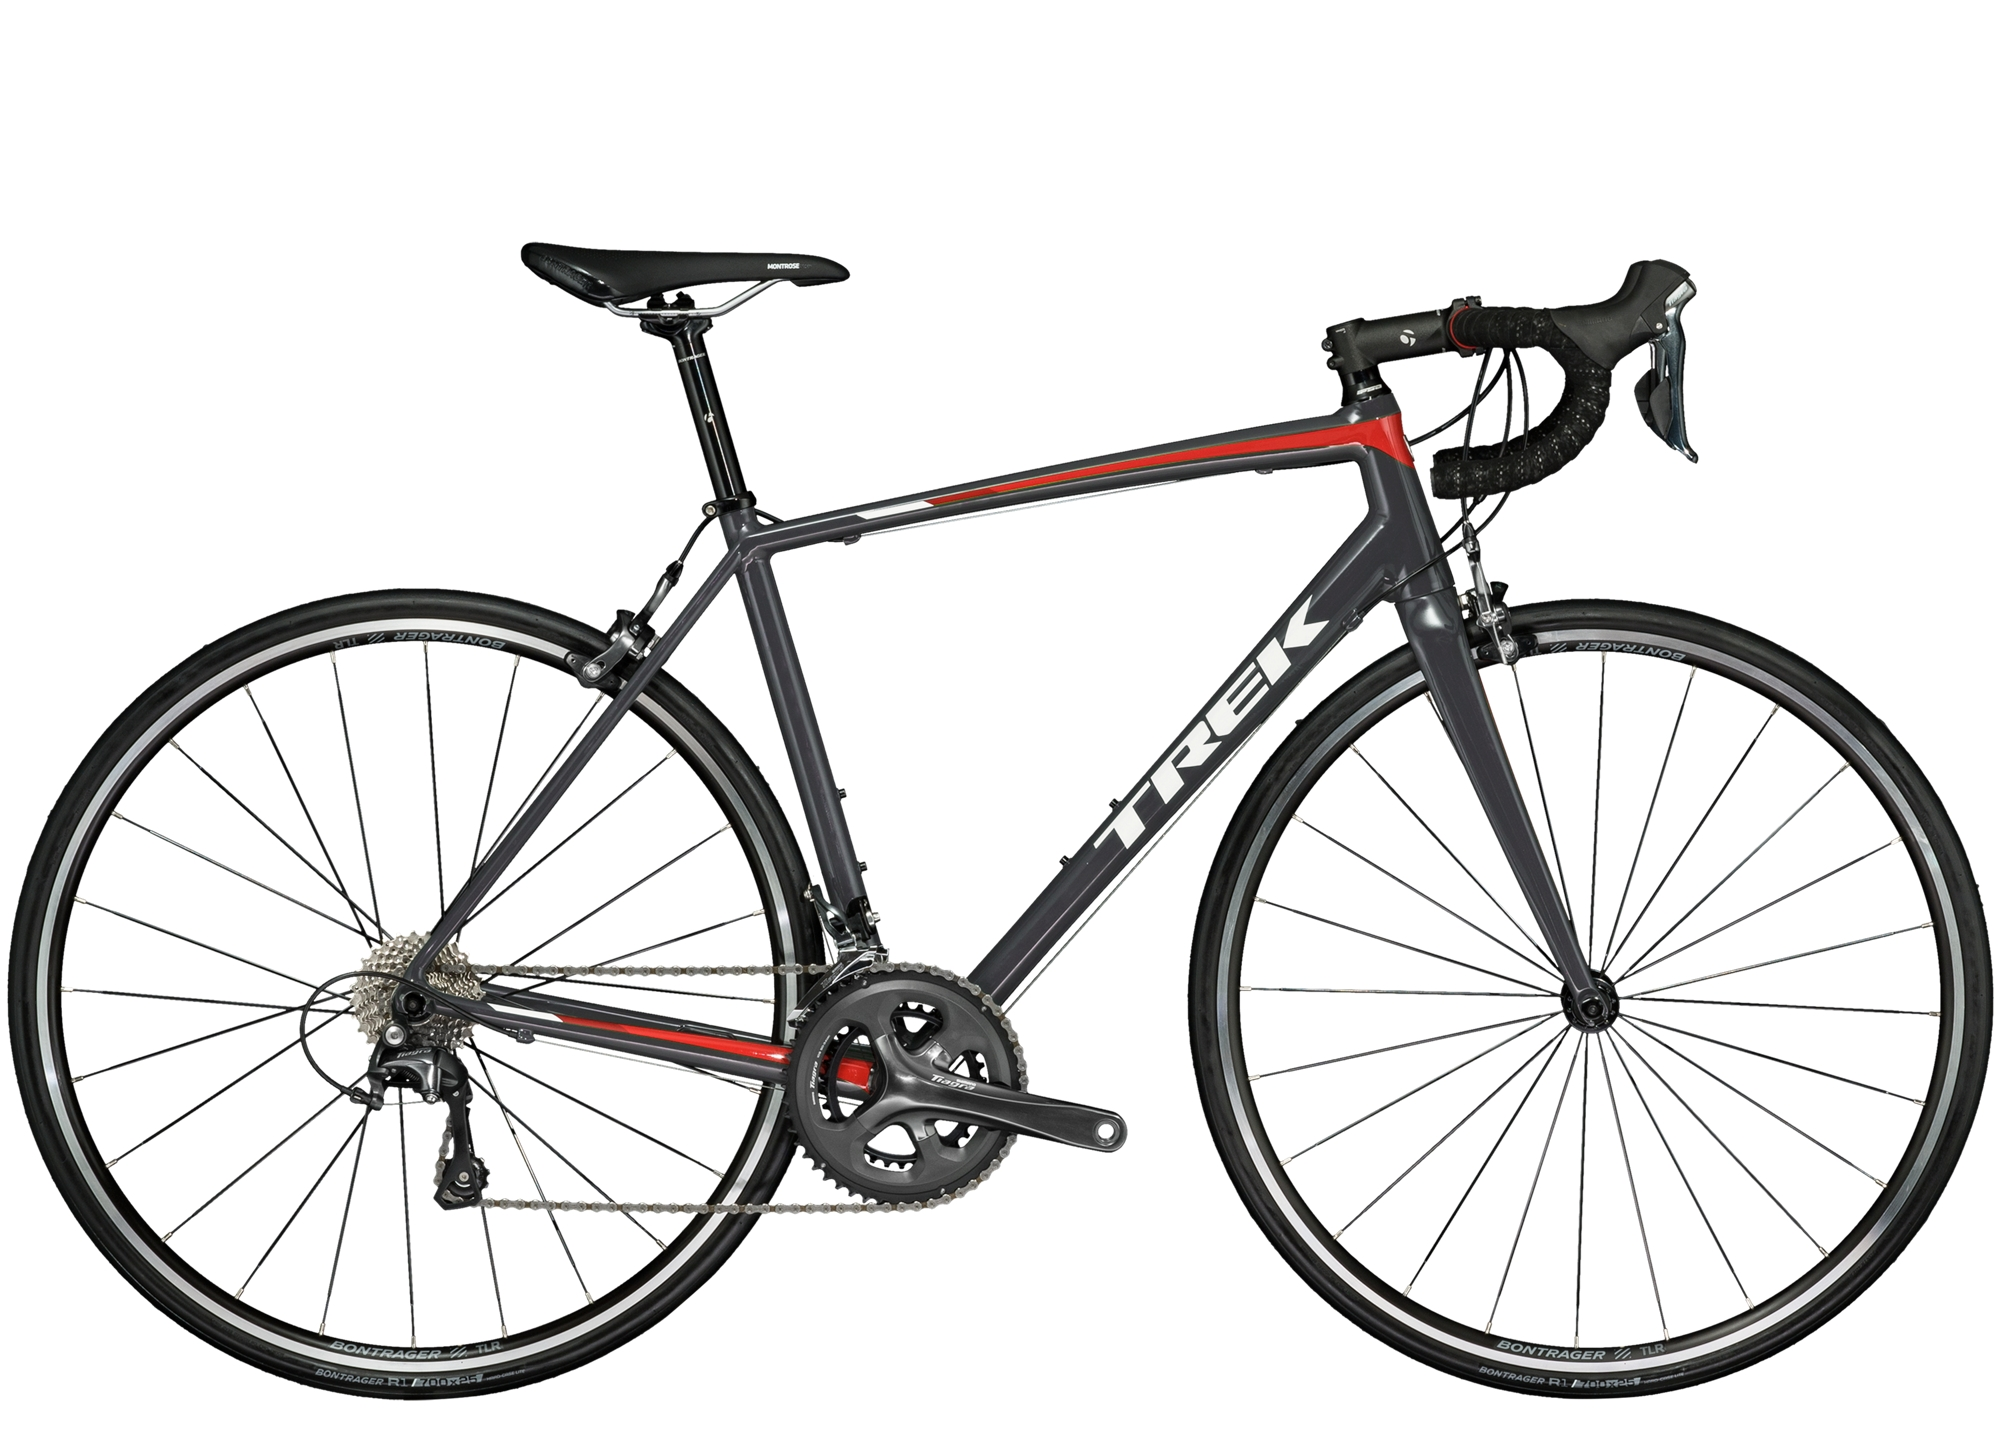 https://trek.scene7.com/is/image/TrekBicycleProducts/1424000_2018_A_1_Emonda_ALR_4?wid=2000